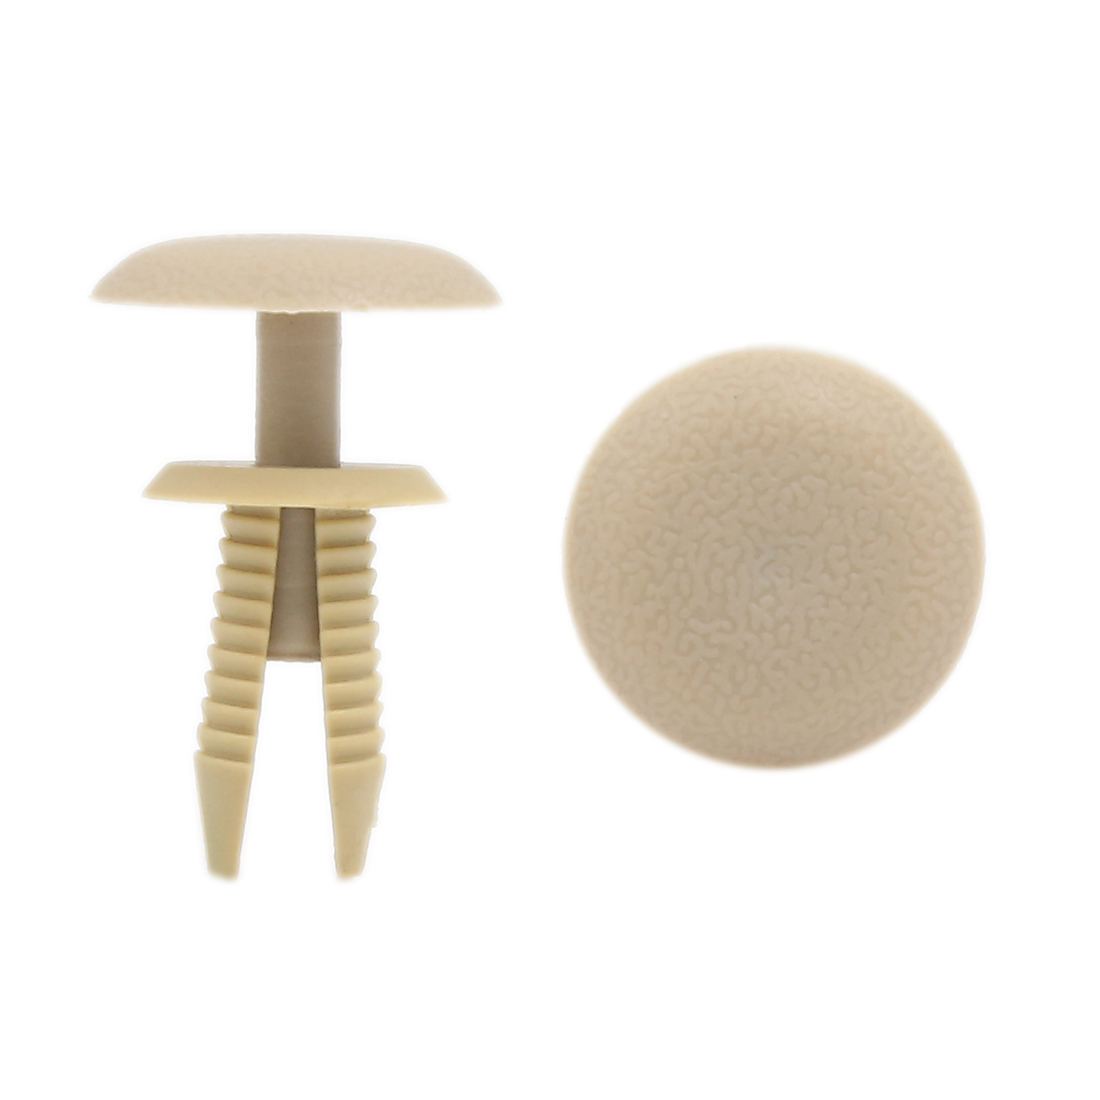 100 Pcs Beige Push in Type Plastic Rivets Fastener 9mm Dia for Car Bumper Fender